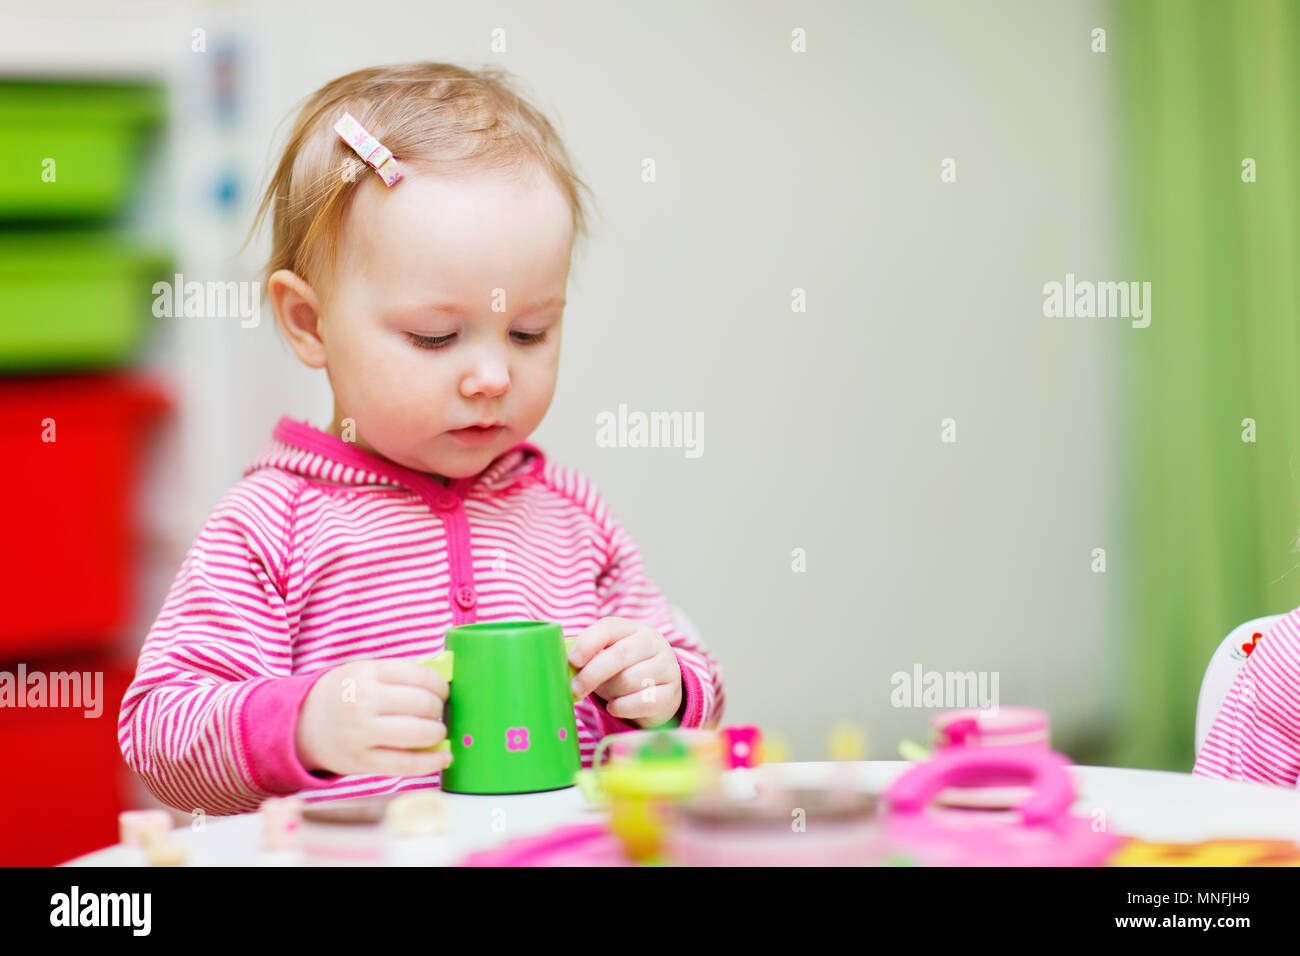 Adorable toddler girl playing with toys at home or daycare place Stock Photo